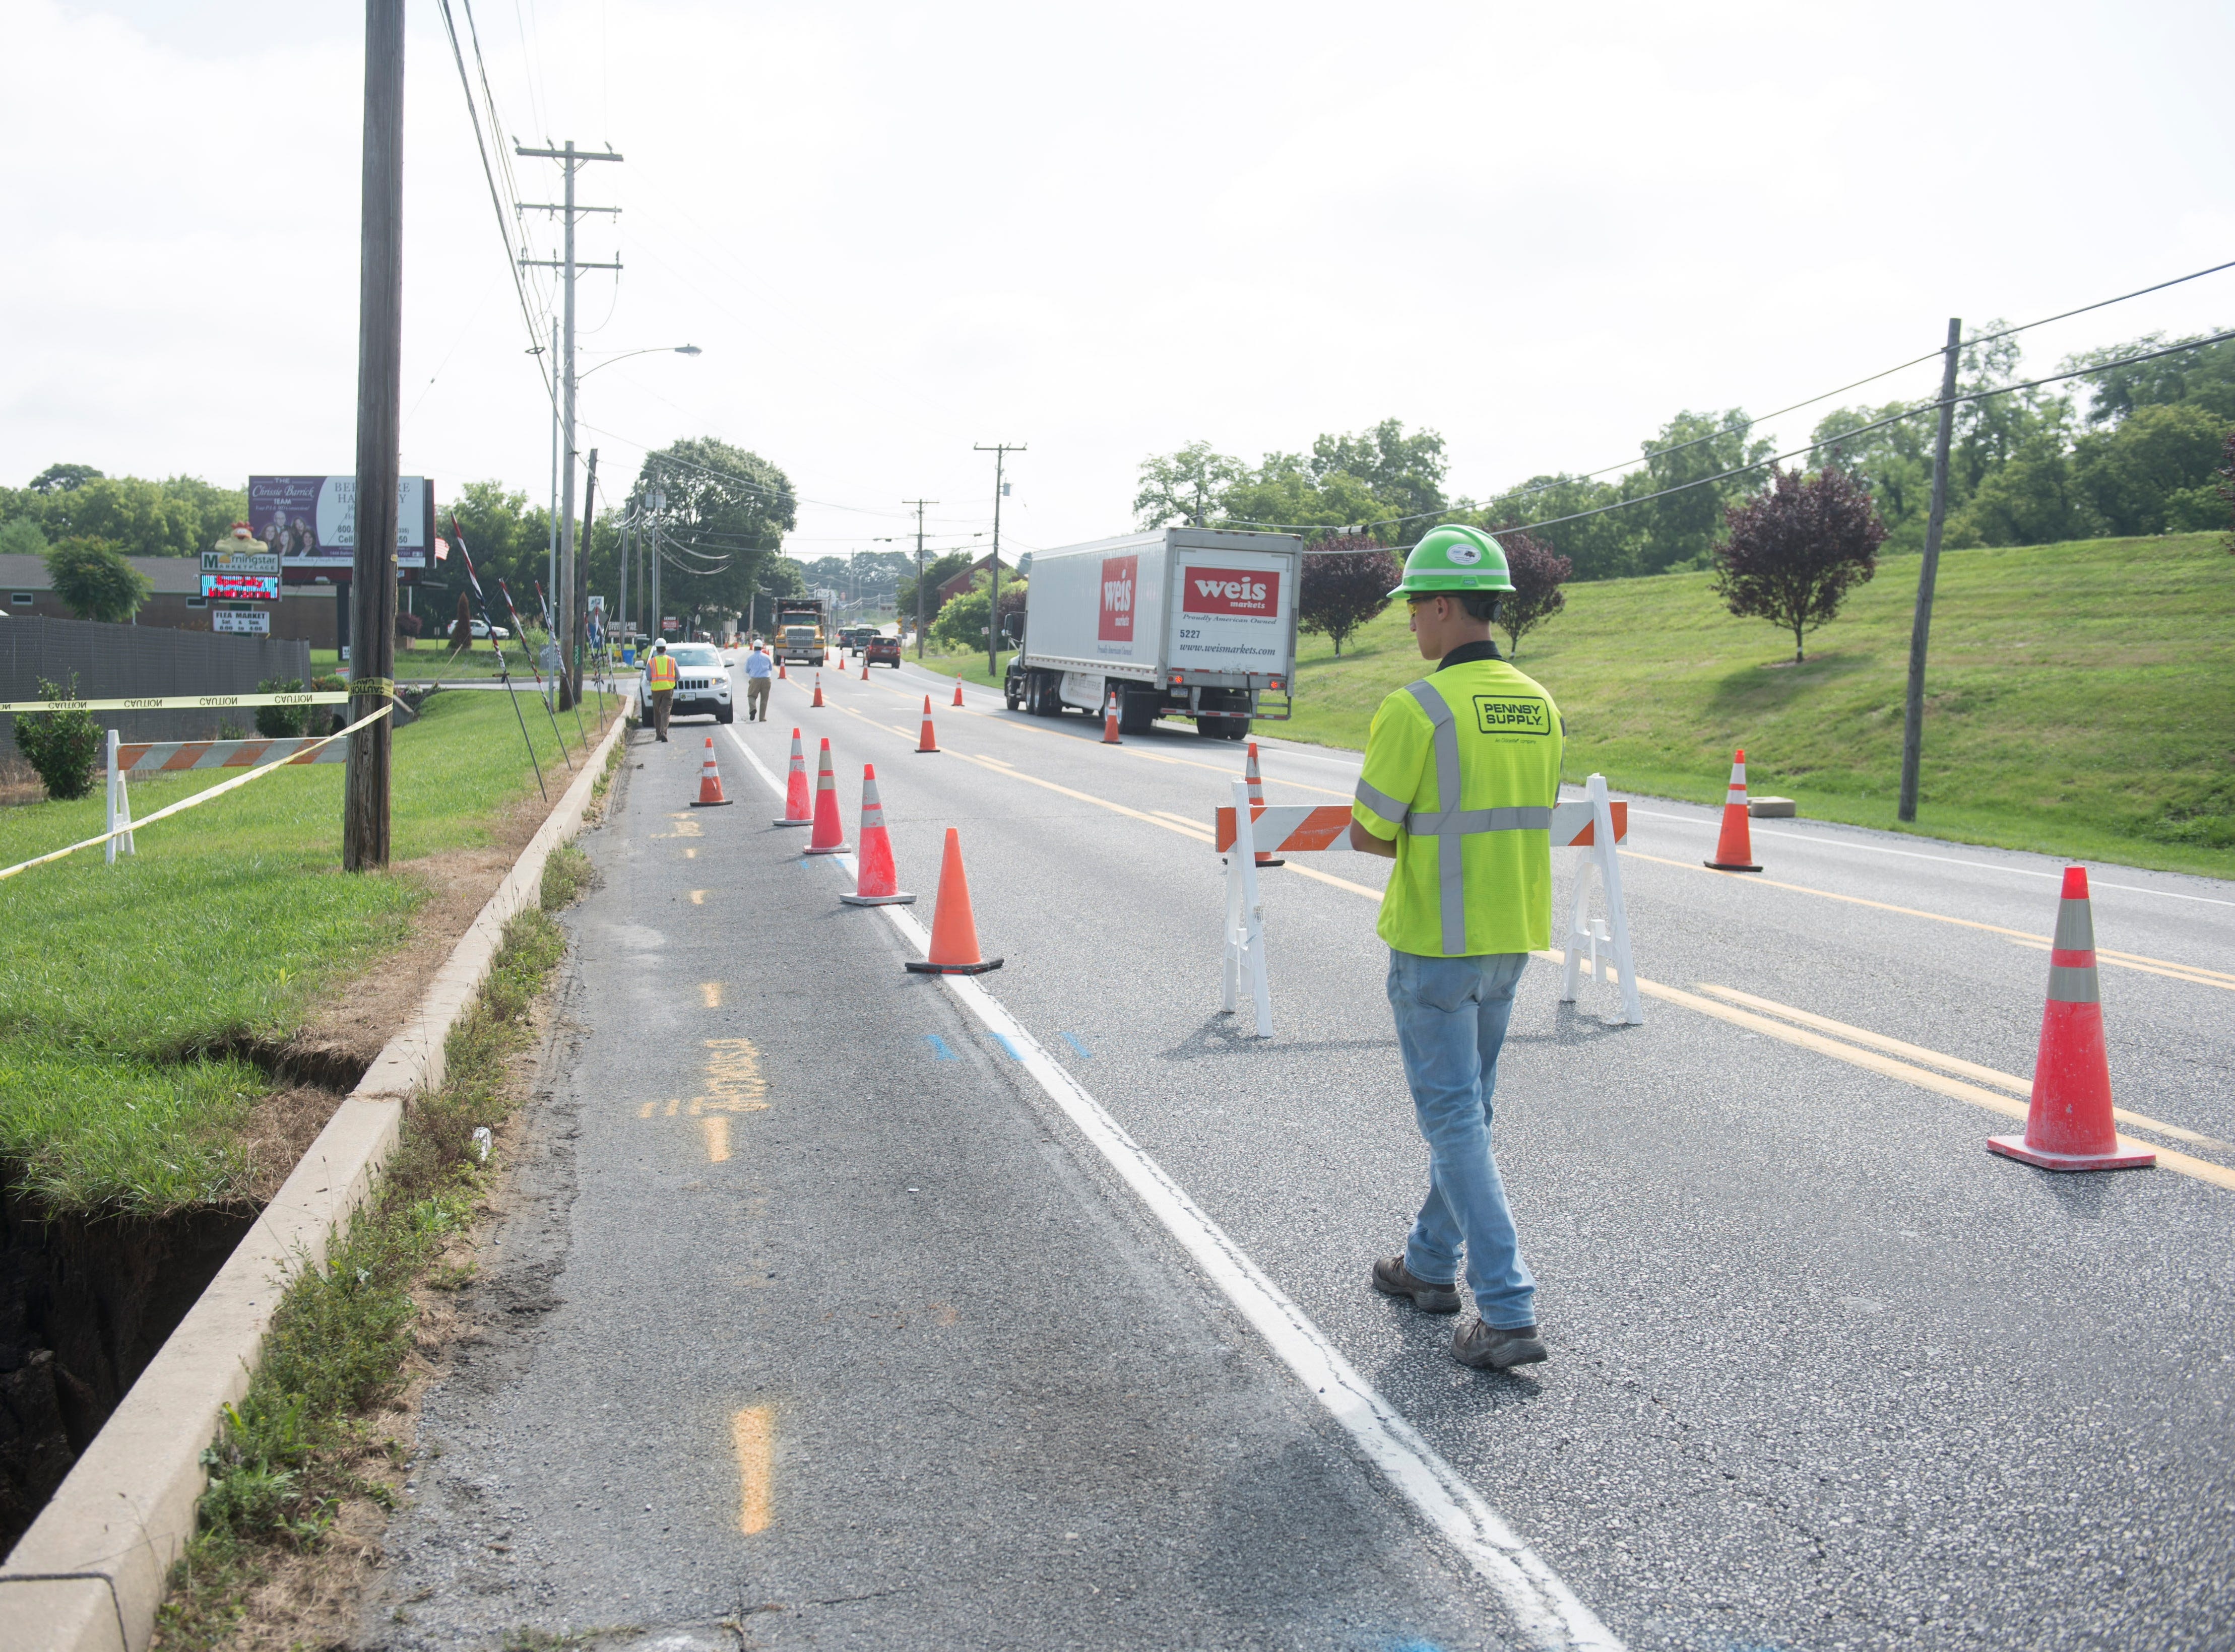 Route 30 is open, but traffic is being diverted around a sinkhole near Thomasville, just east of Biesecker Road in Jackson Township.